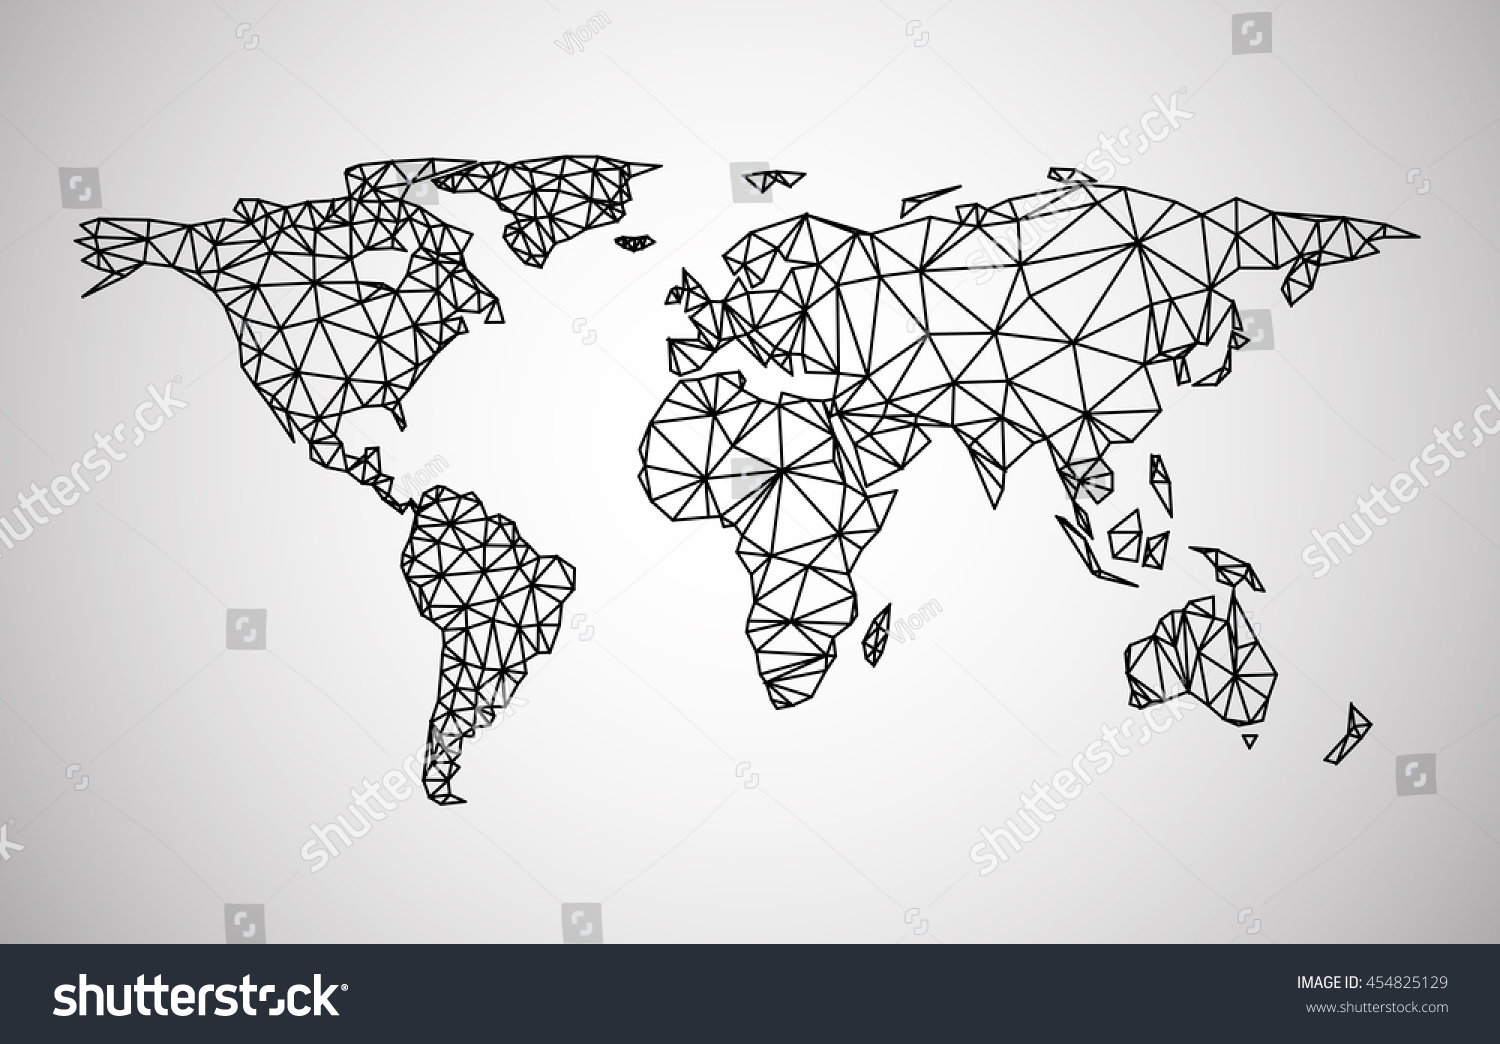 Black abstract world map vector paper stock vector hd royalty free black abstract world map vector paper illustration gumiabroncs Image collections